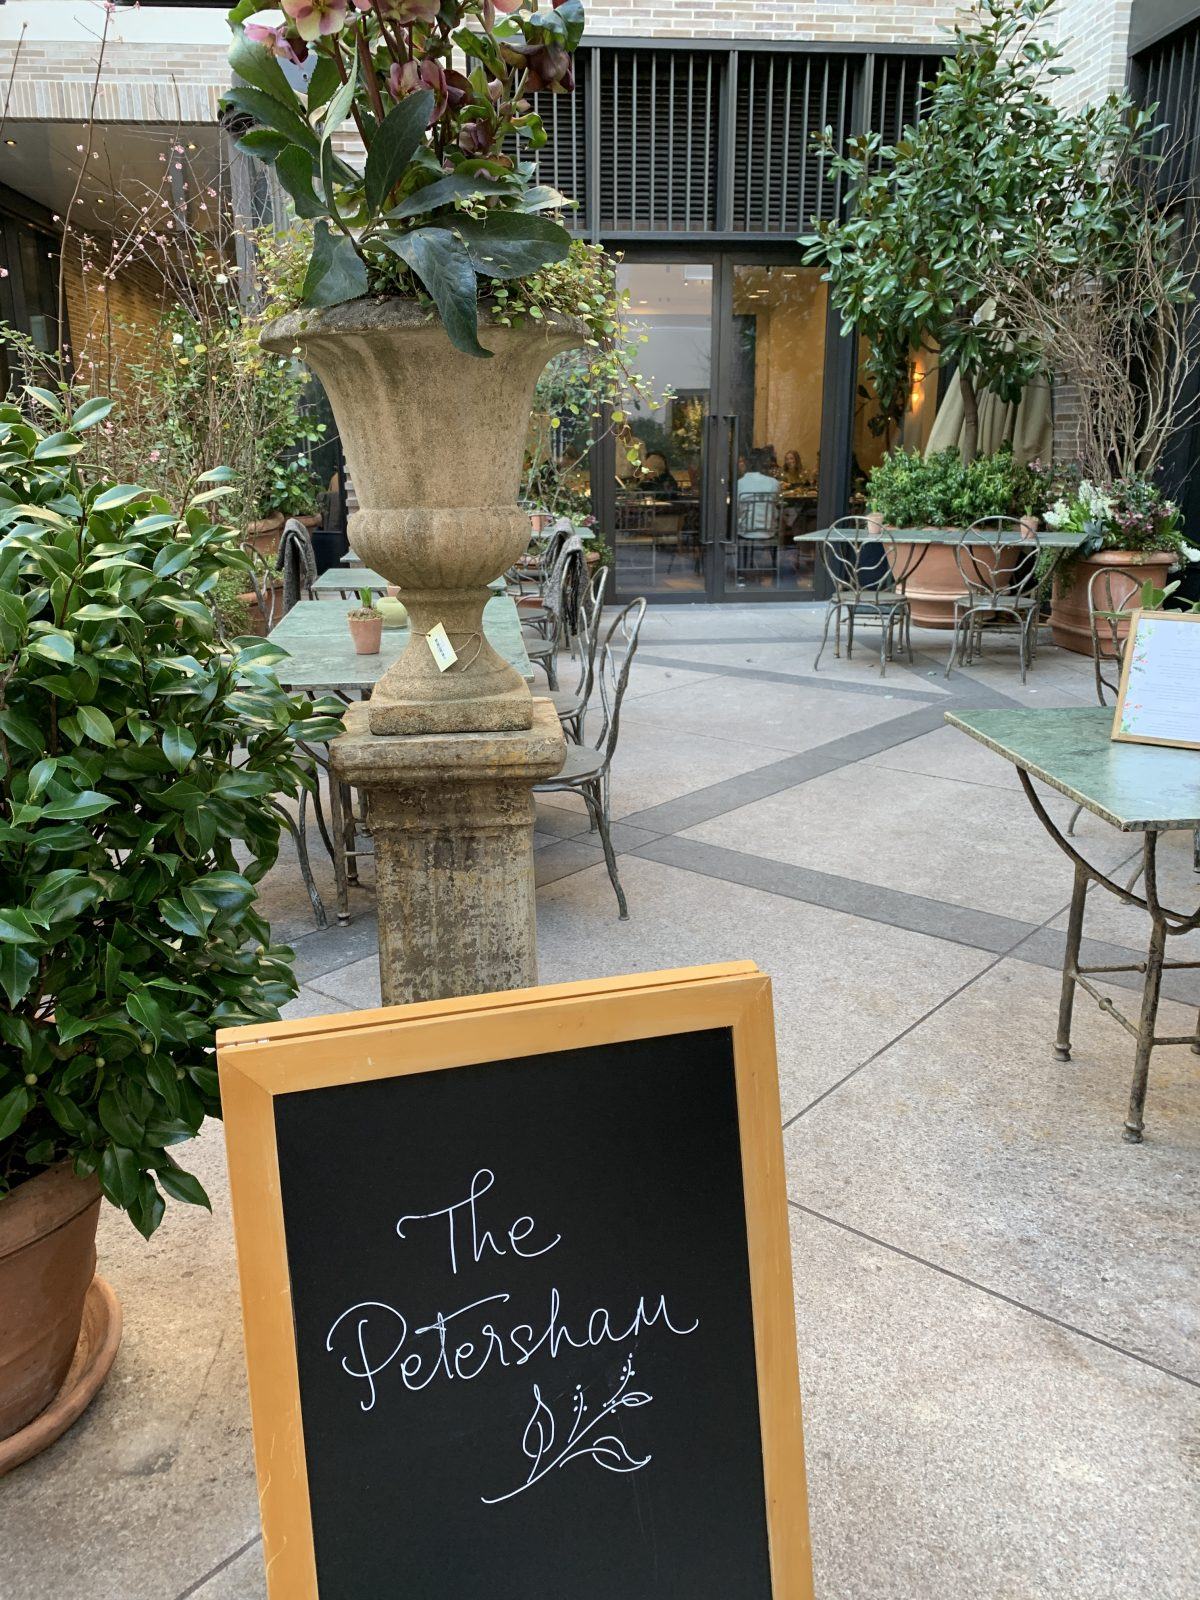 7 Things to do at Petersham Nurseries The Petersham Covent Garden #PetershamNurseries #Garden #GardenTools #GardenSupplies #Gardening #HomeDecor #GardenDecor #London #CoventGarden